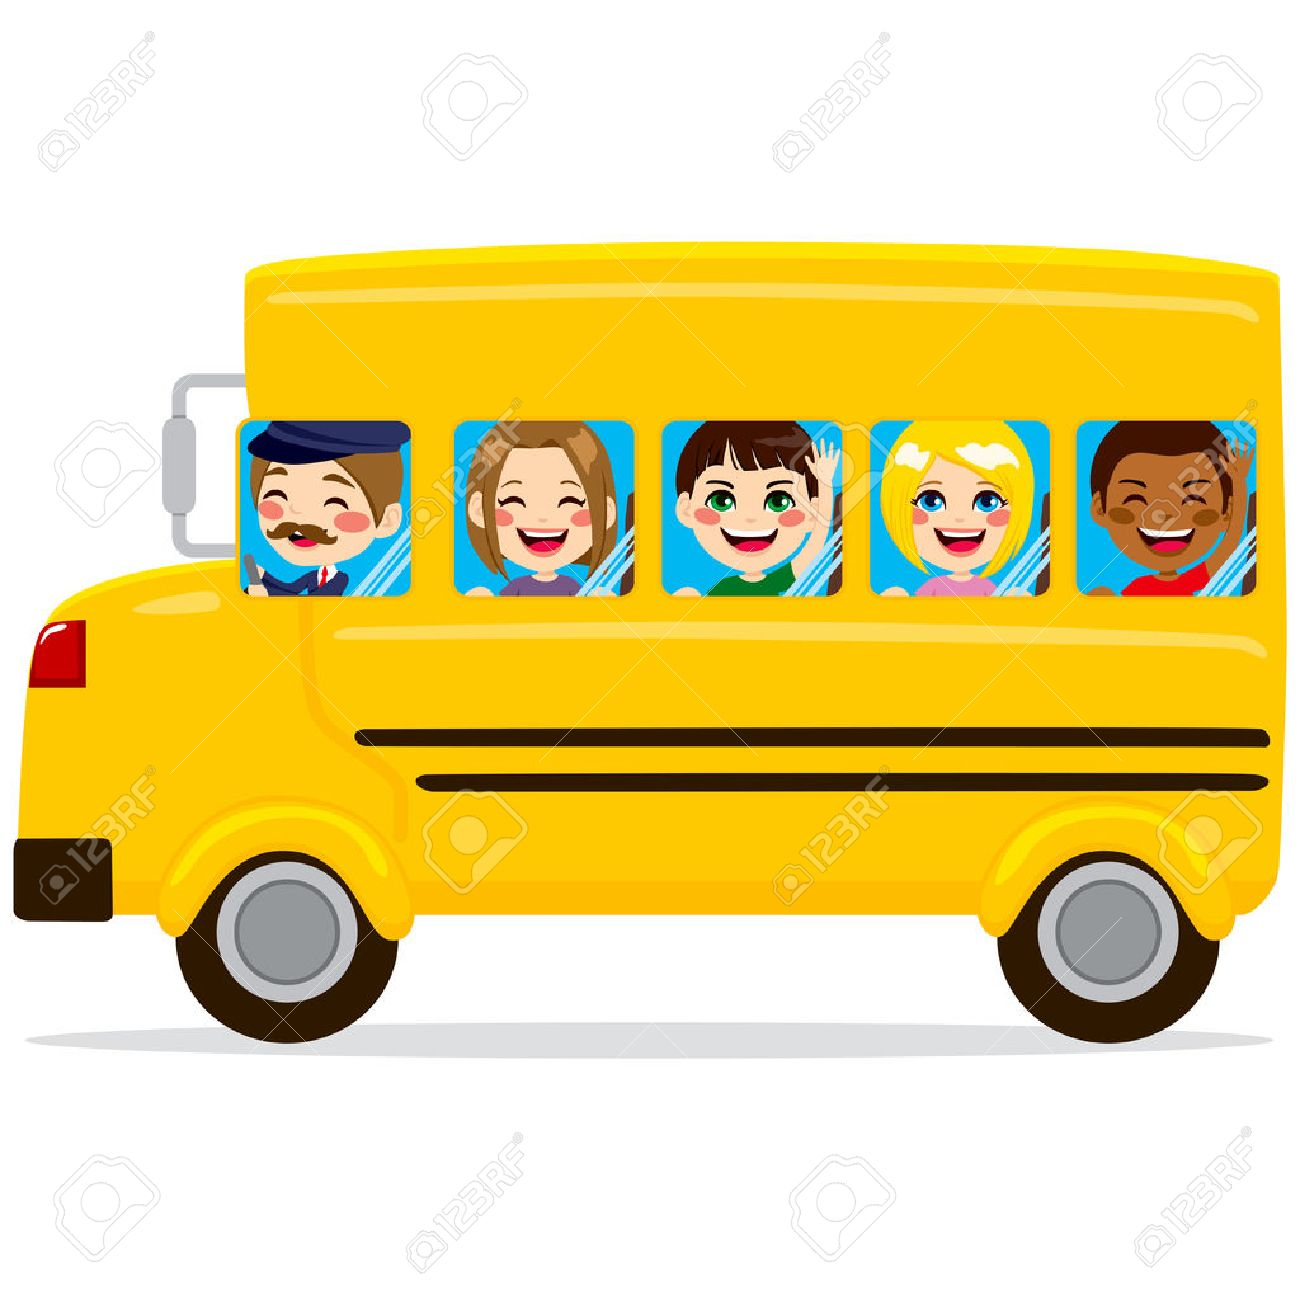 illustration of school bus with cute happy kids and driver royalty rh 123rf com Magic School Bus Clip Art Magic School Bus Clip Art